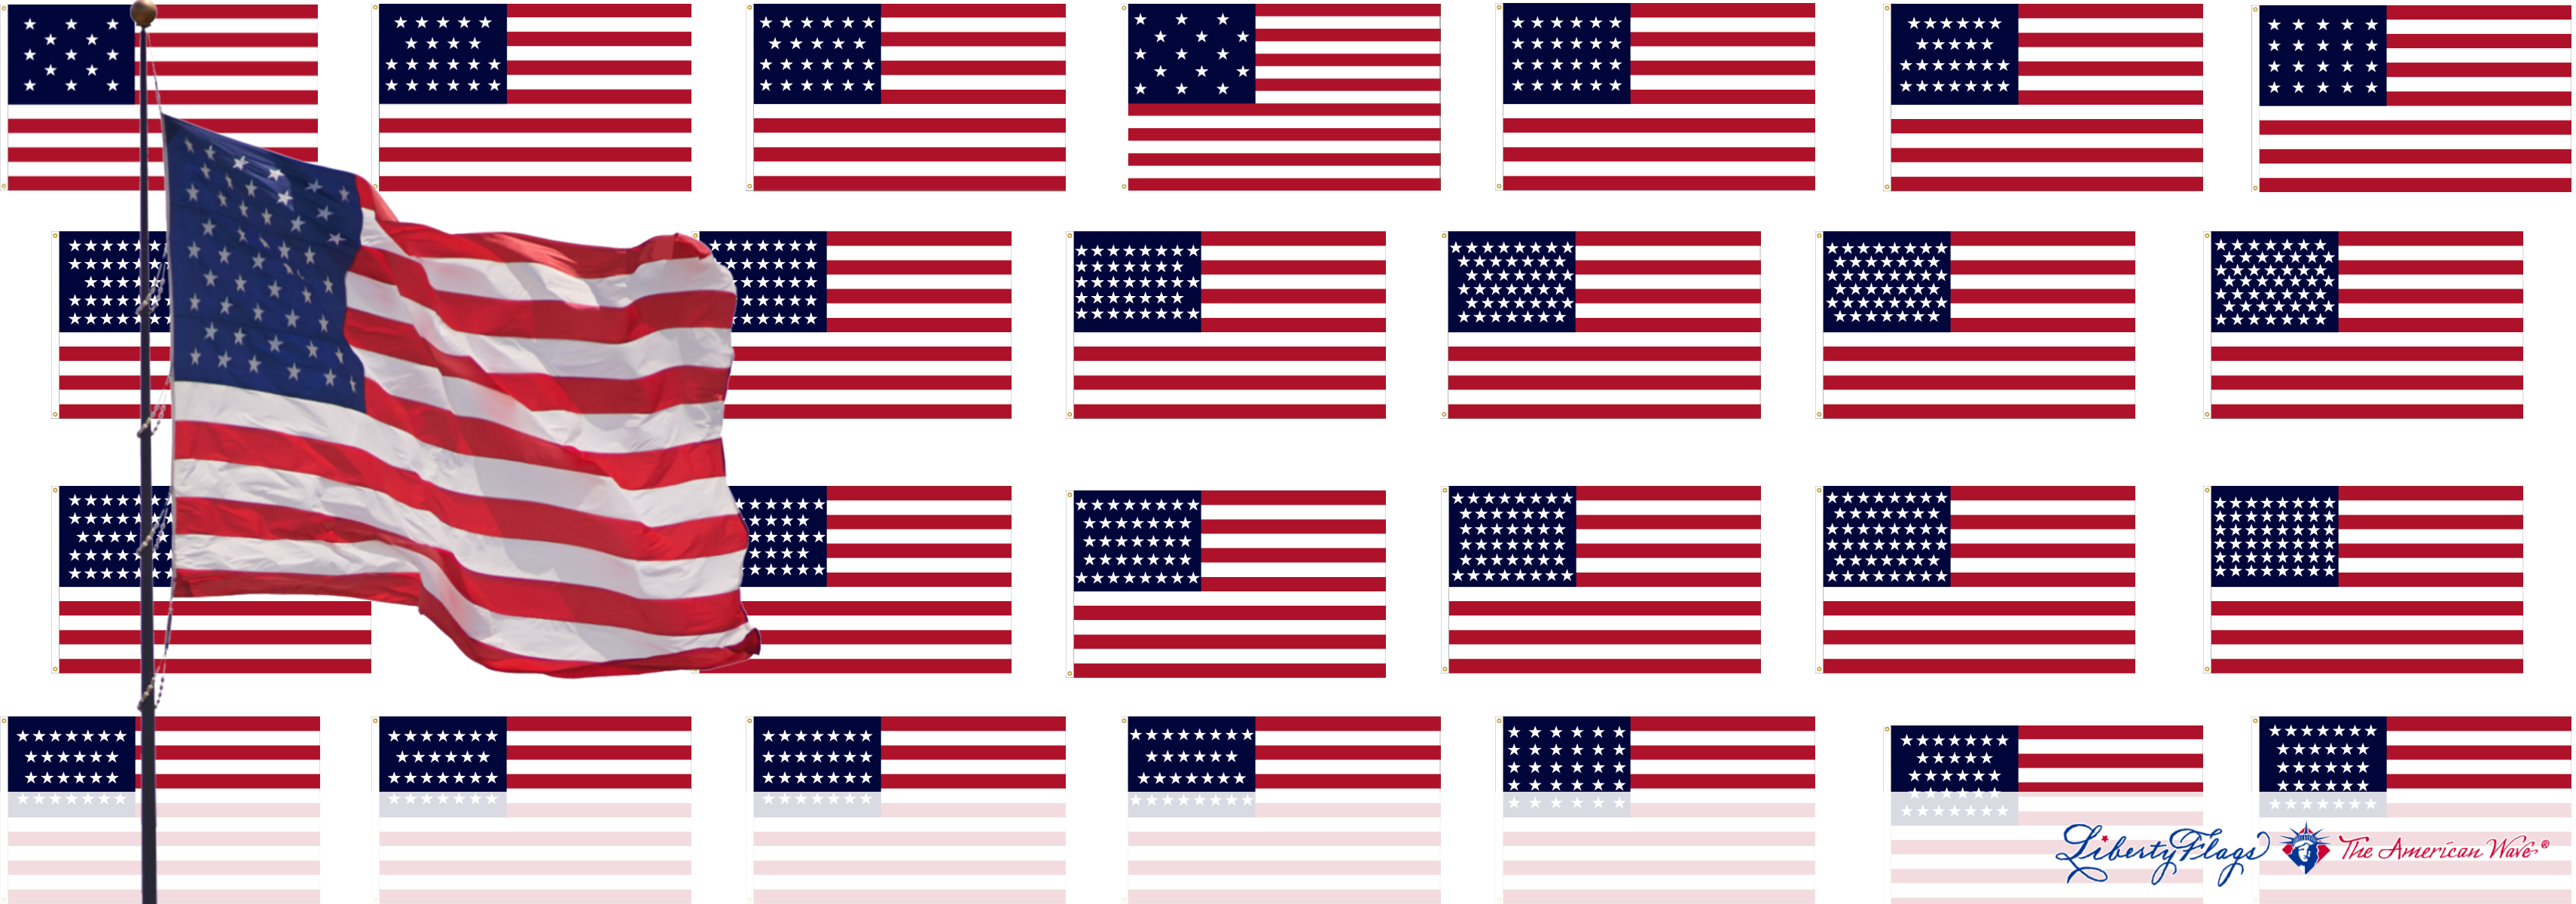 Historic Star Pattern American Flags from LIBERTY FLAGS, The American Wave®